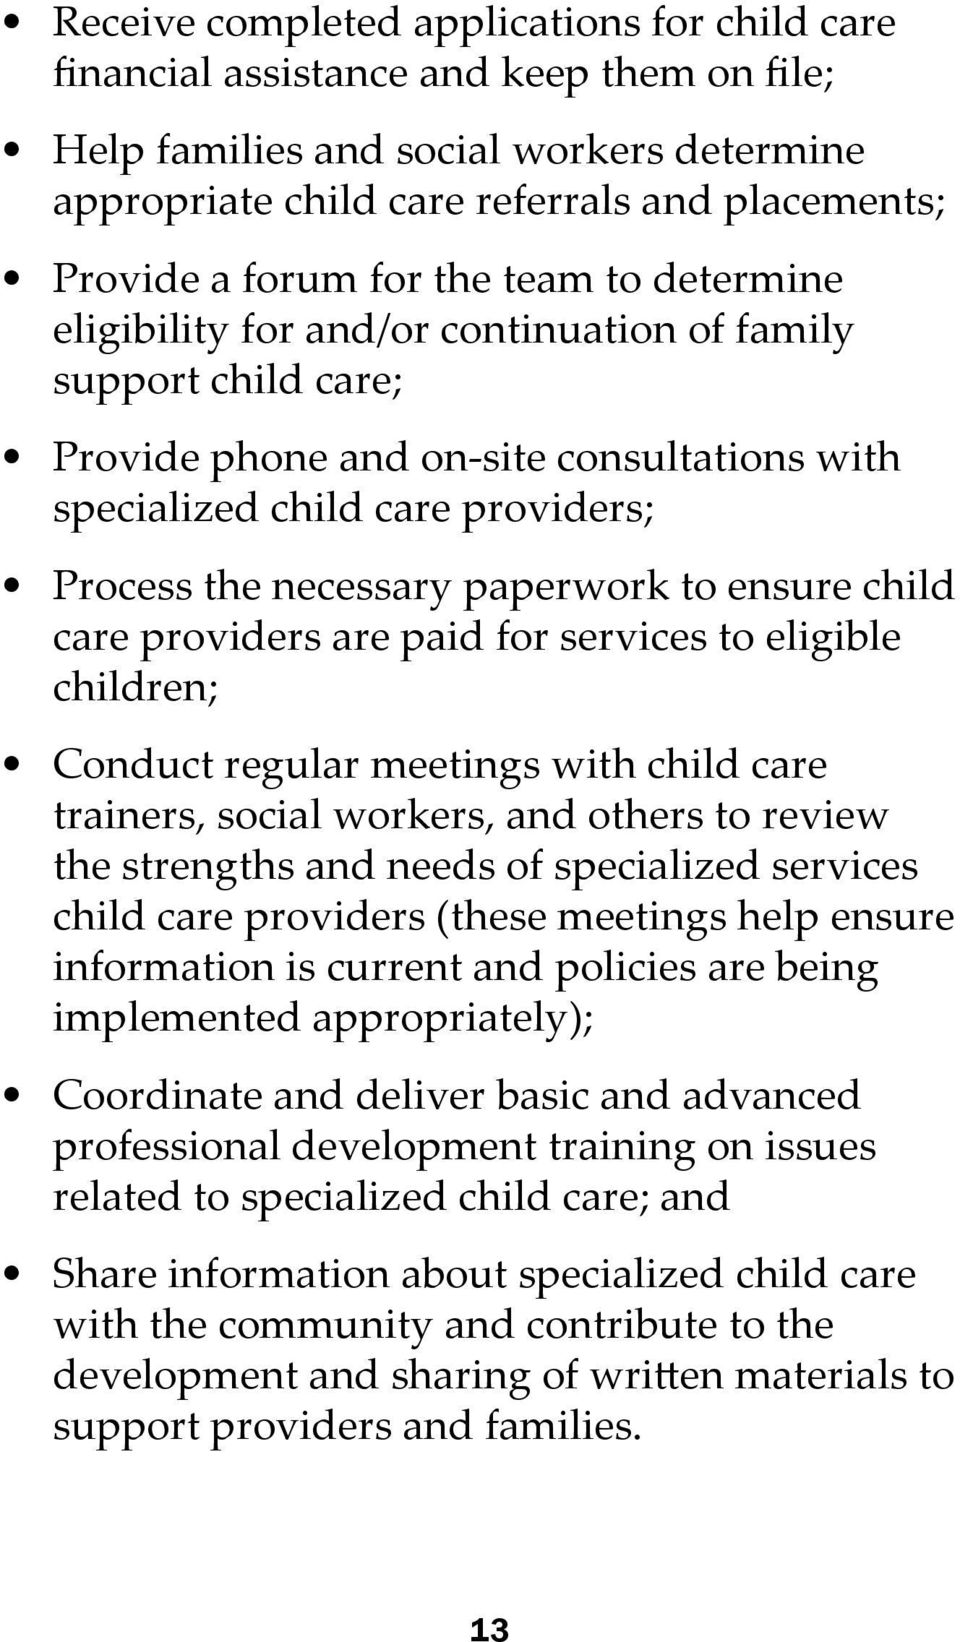 paperwork to ensure child care providers are paid for services to eligible children; Conduct regular meetings with child care trainers, social workers, and others to review the strengths and needs of